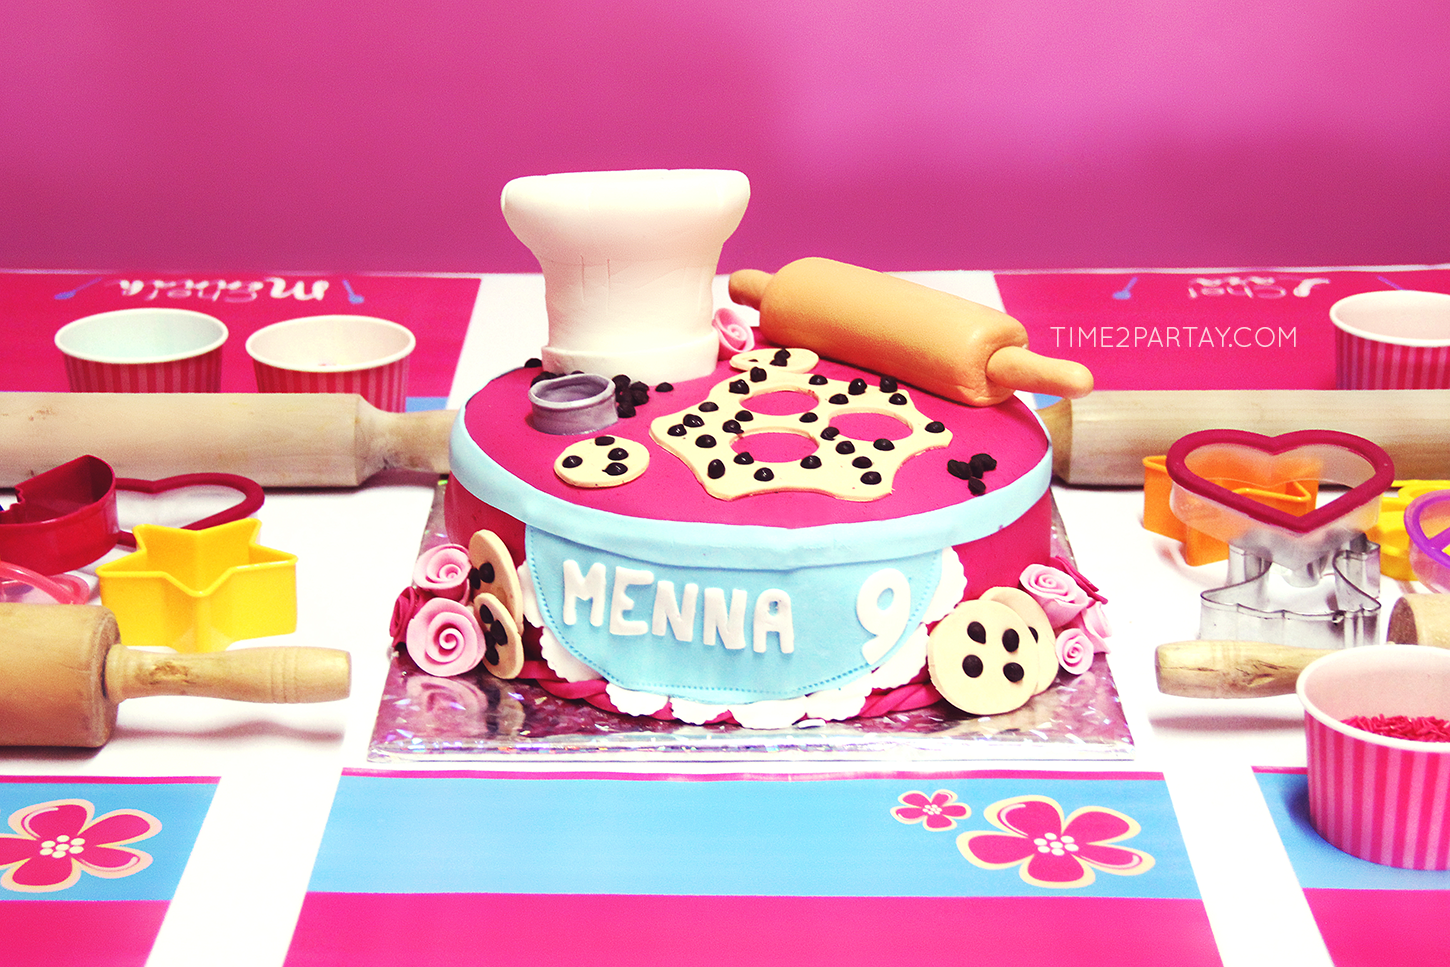 Bake Shop Birthday_3